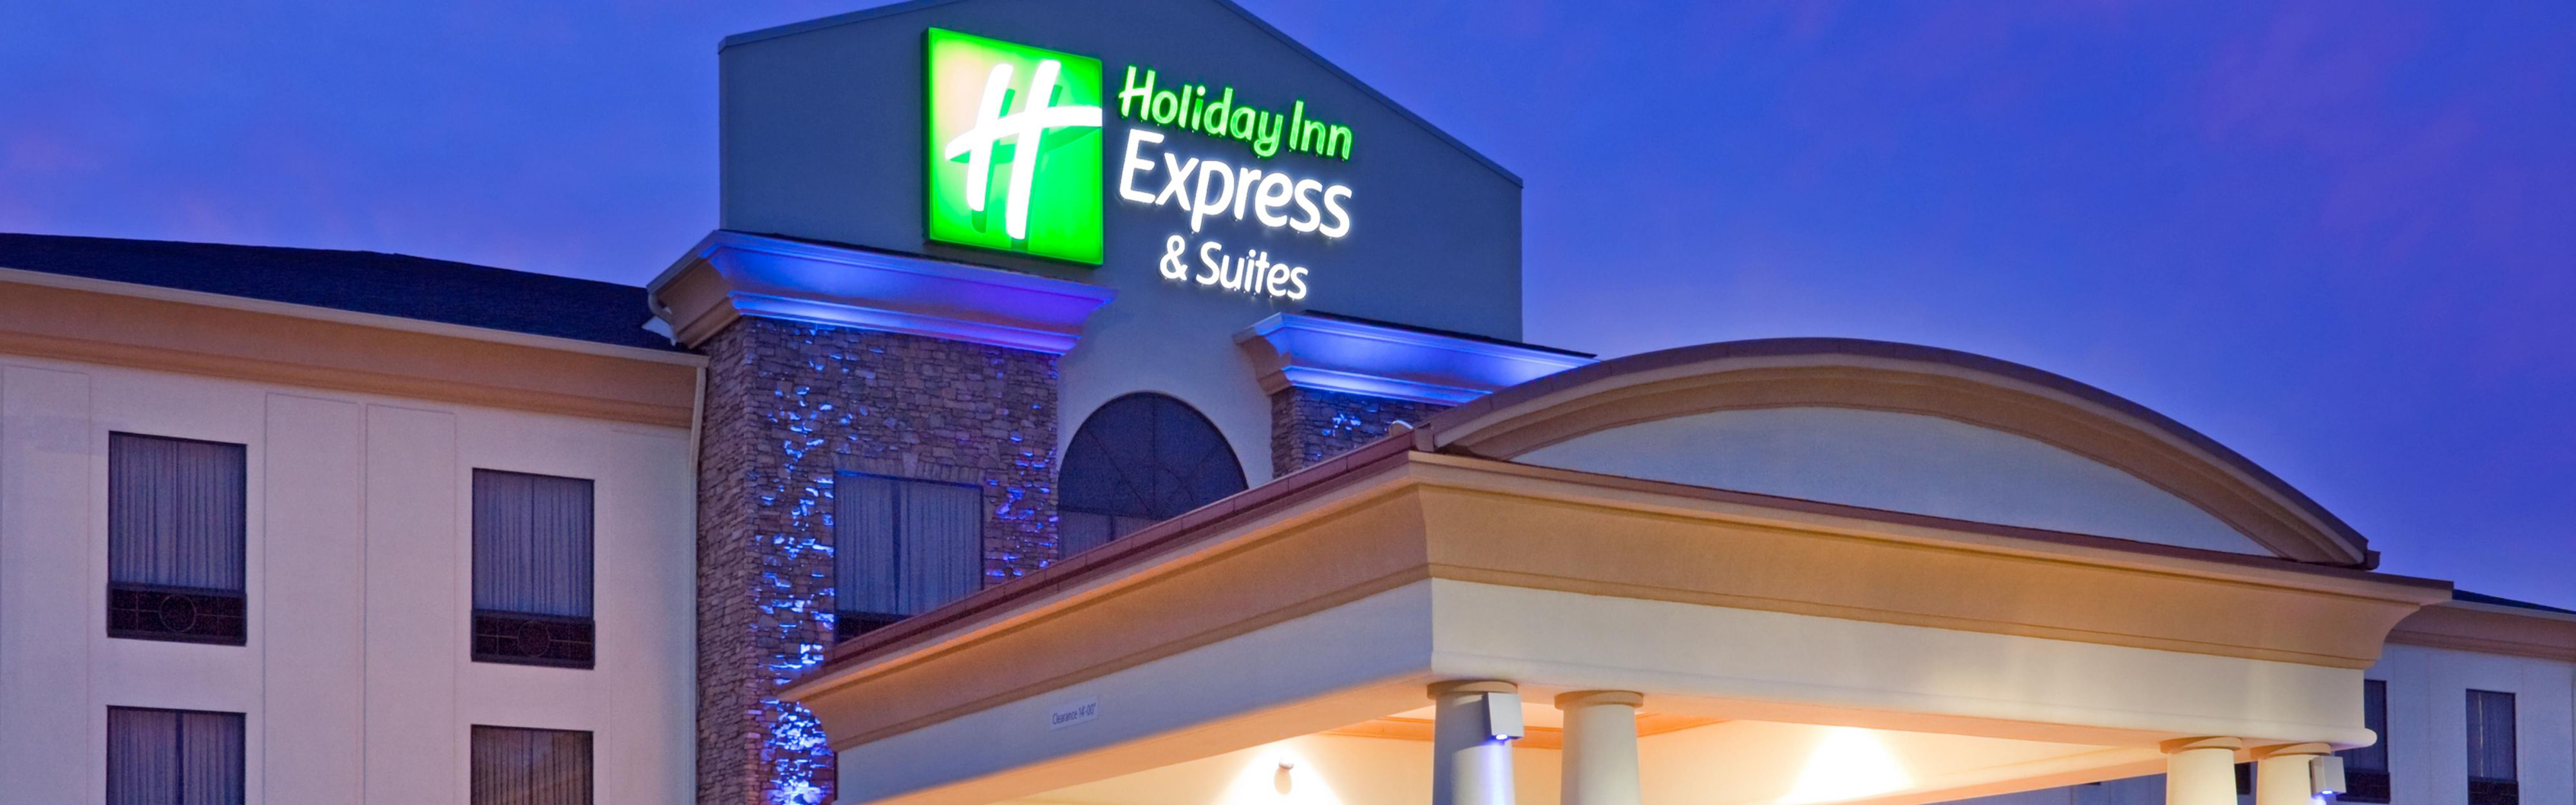 Holiday Inn Express & Suites Knoxville-Farragut image 0